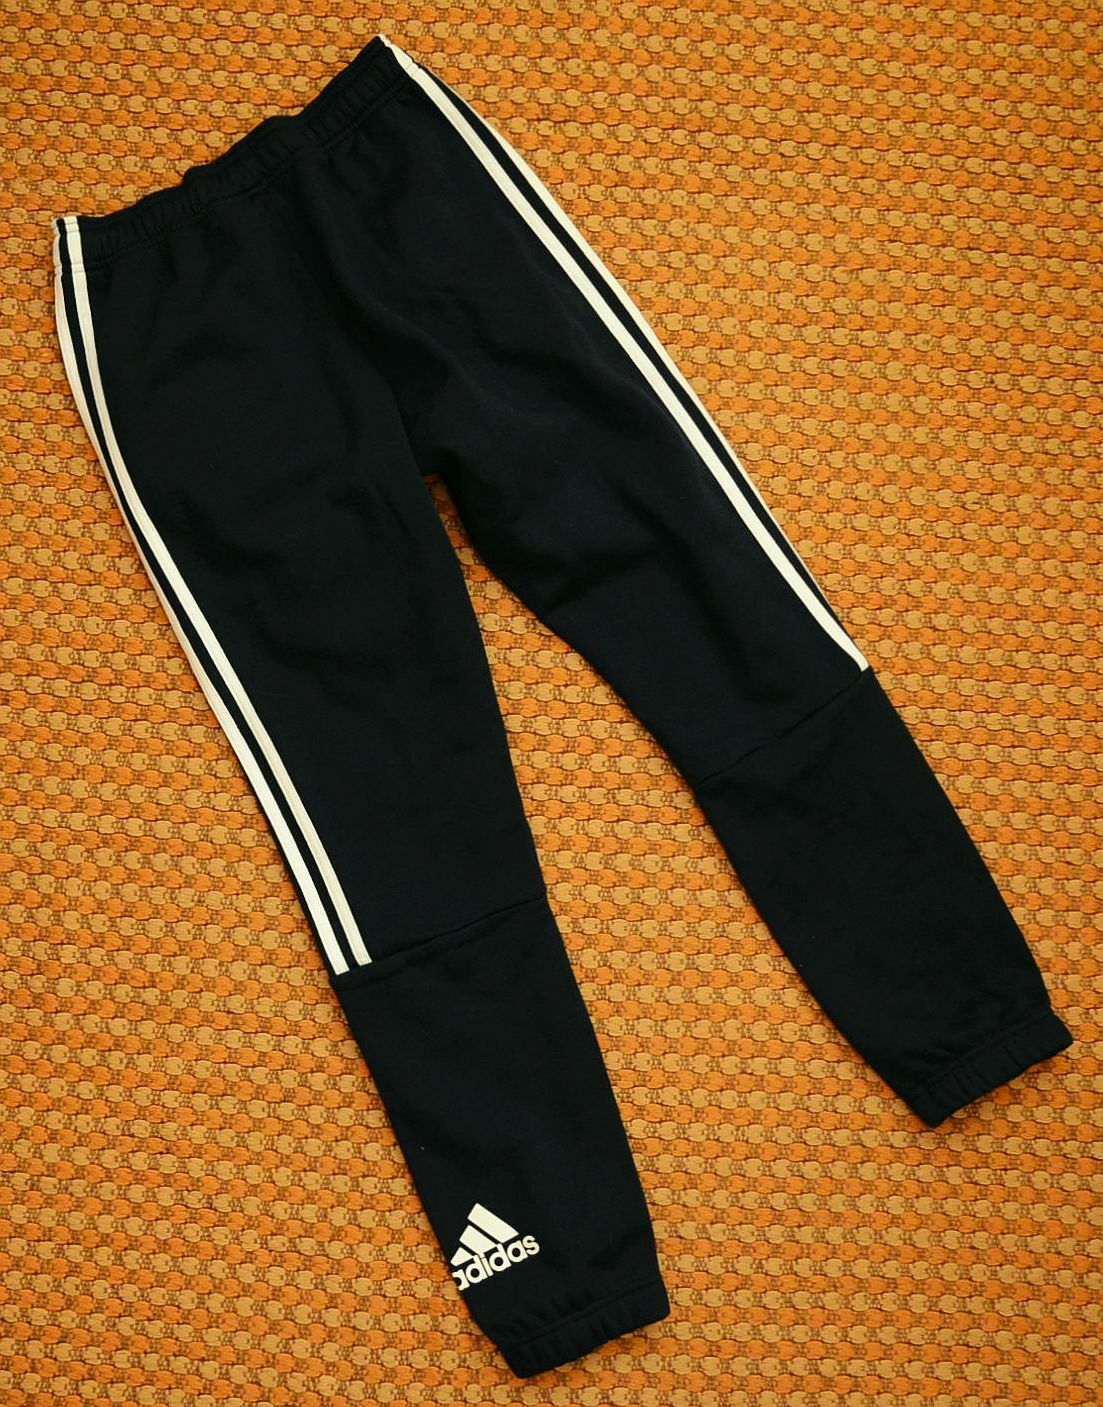 Adidas, Mens Navy bluee Training Cotton Pants, Size - Small, NWOT